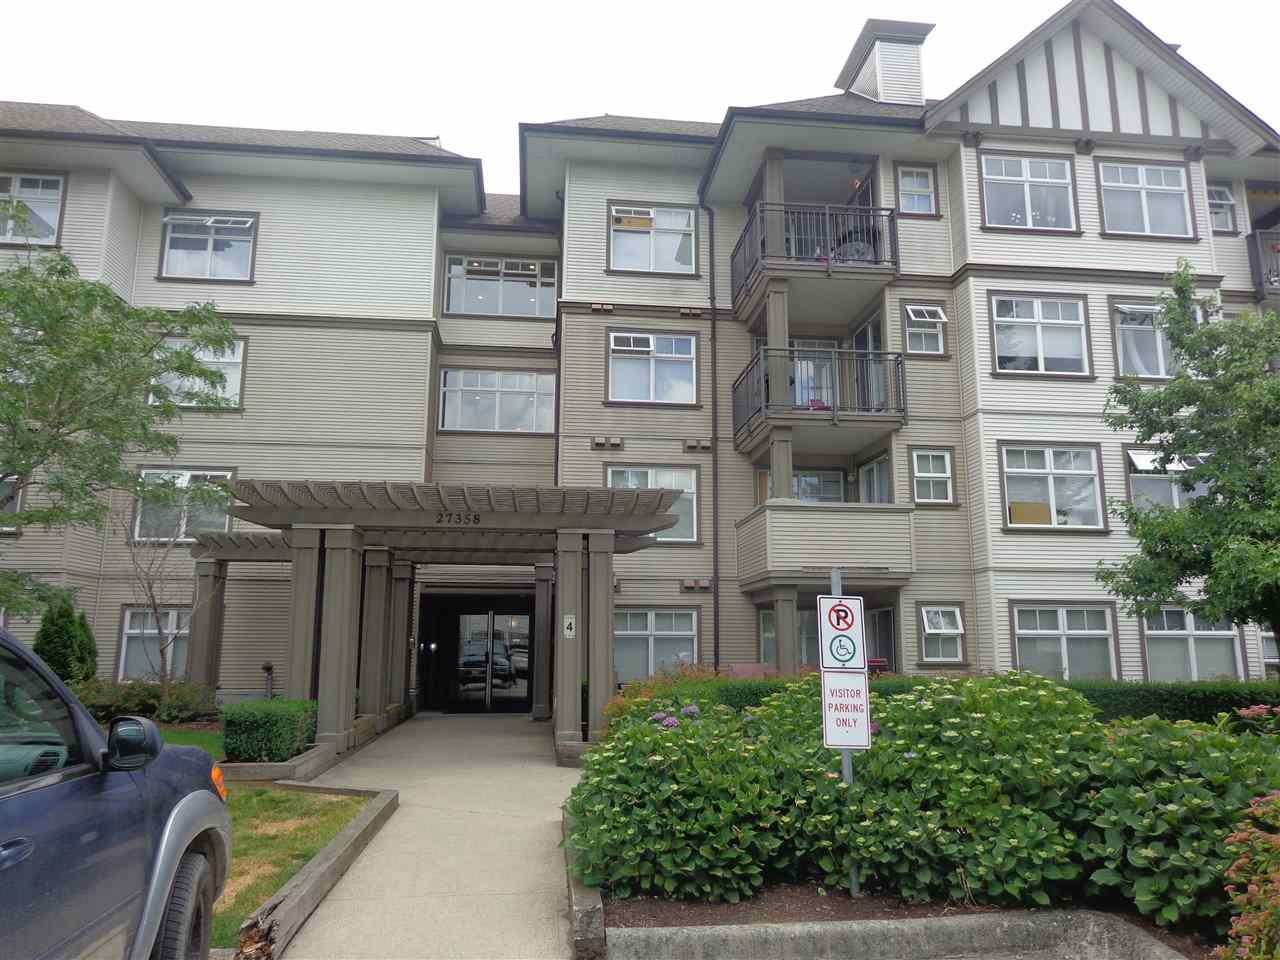 "Photo 2: Photos: 240 27358 32 Avenue in Langley: Aldergrove Langley Condo for sale in ""Willowcreek Phase 4"" : MLS®# R2385454"